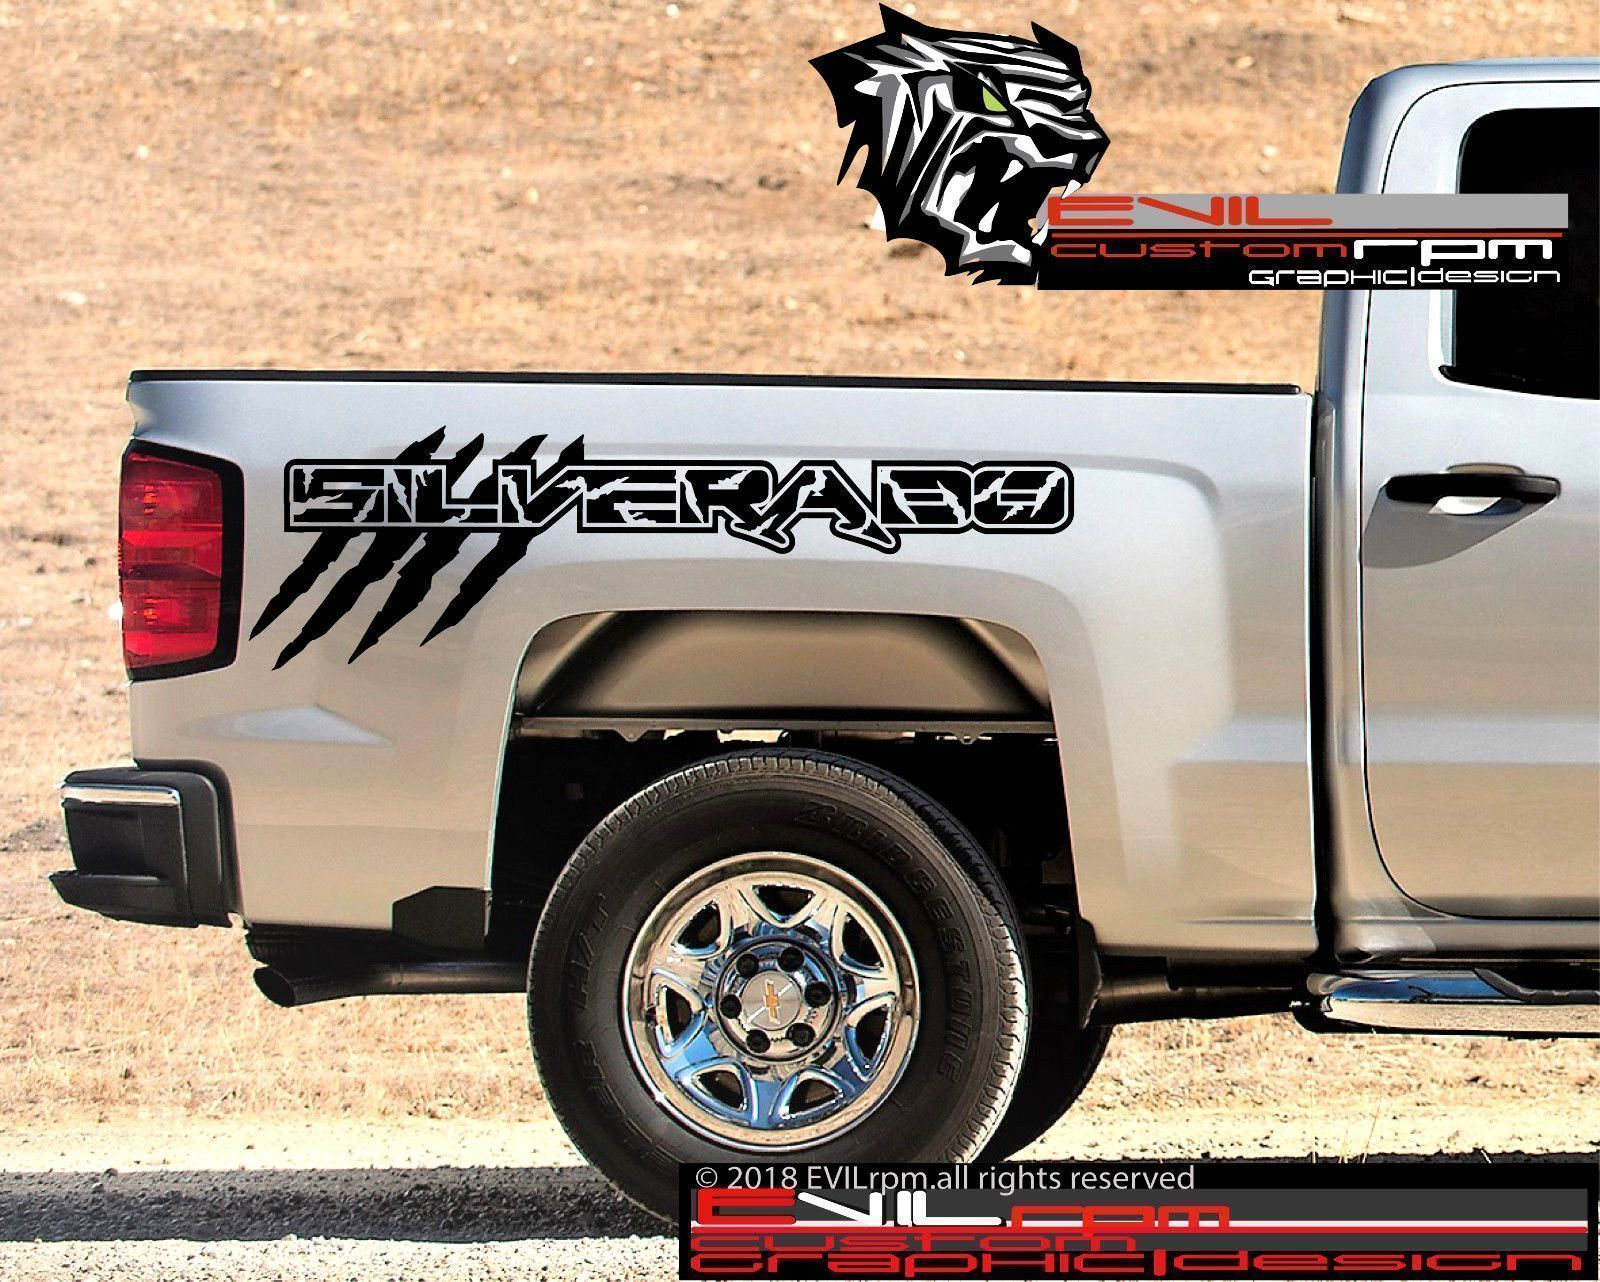 Vinyl Decals and Stickers, Custom Vehicle Design & Truck